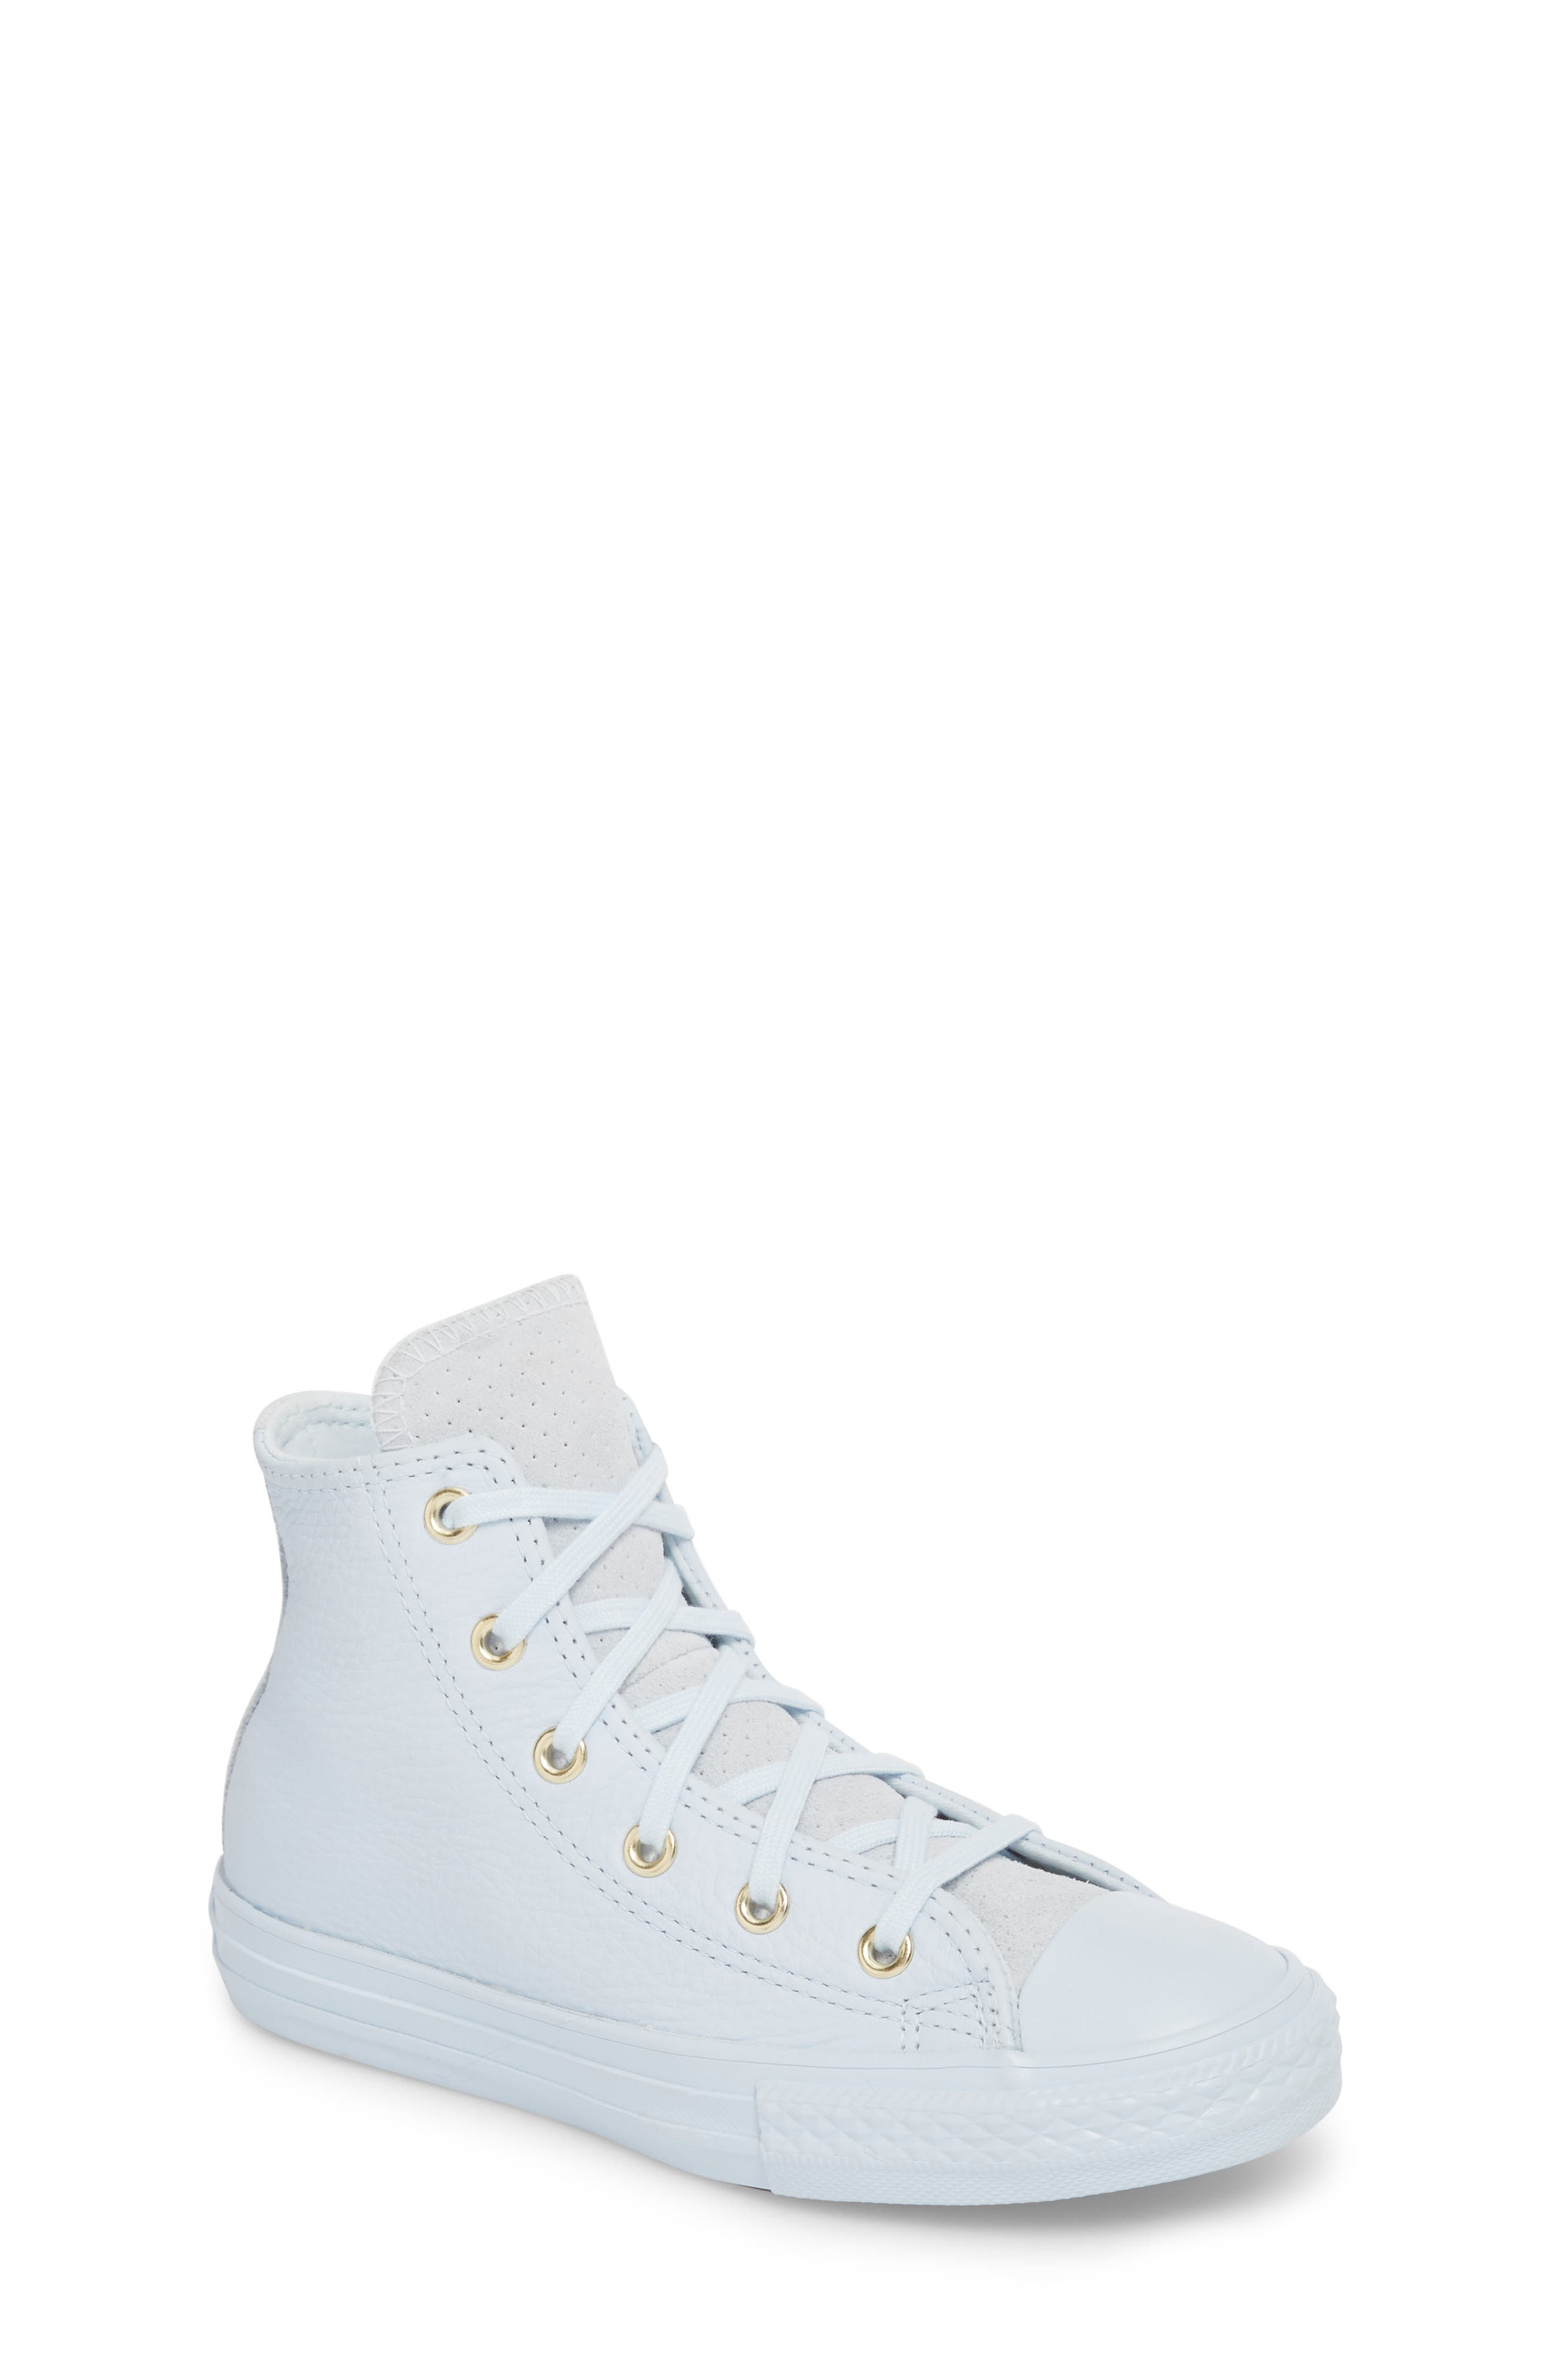 Chuck Taylor<sup>®</sup> All Star<sup>®</sup> Mono High Top Sneaker,                         Main,                         color, 454